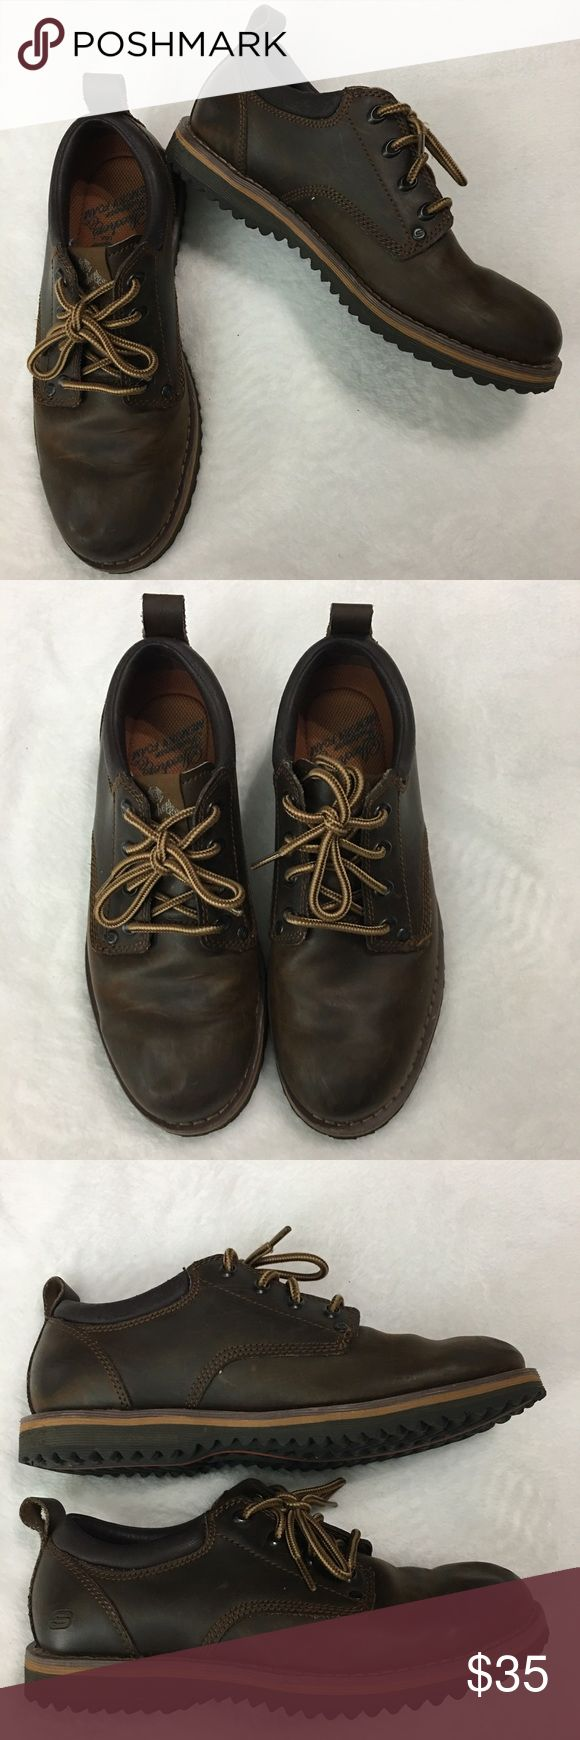 Skechers Brown Leather Lace Up Oxfords Size 8 This is a pair of men's Skechers Brown Leather Lace Up Oxfords Size 8. This shoes are in excellent like new condition. Please take a look at all photos for condition and if you have any questions feel free to ask. Skechers Shoes Oxfords & Derbys